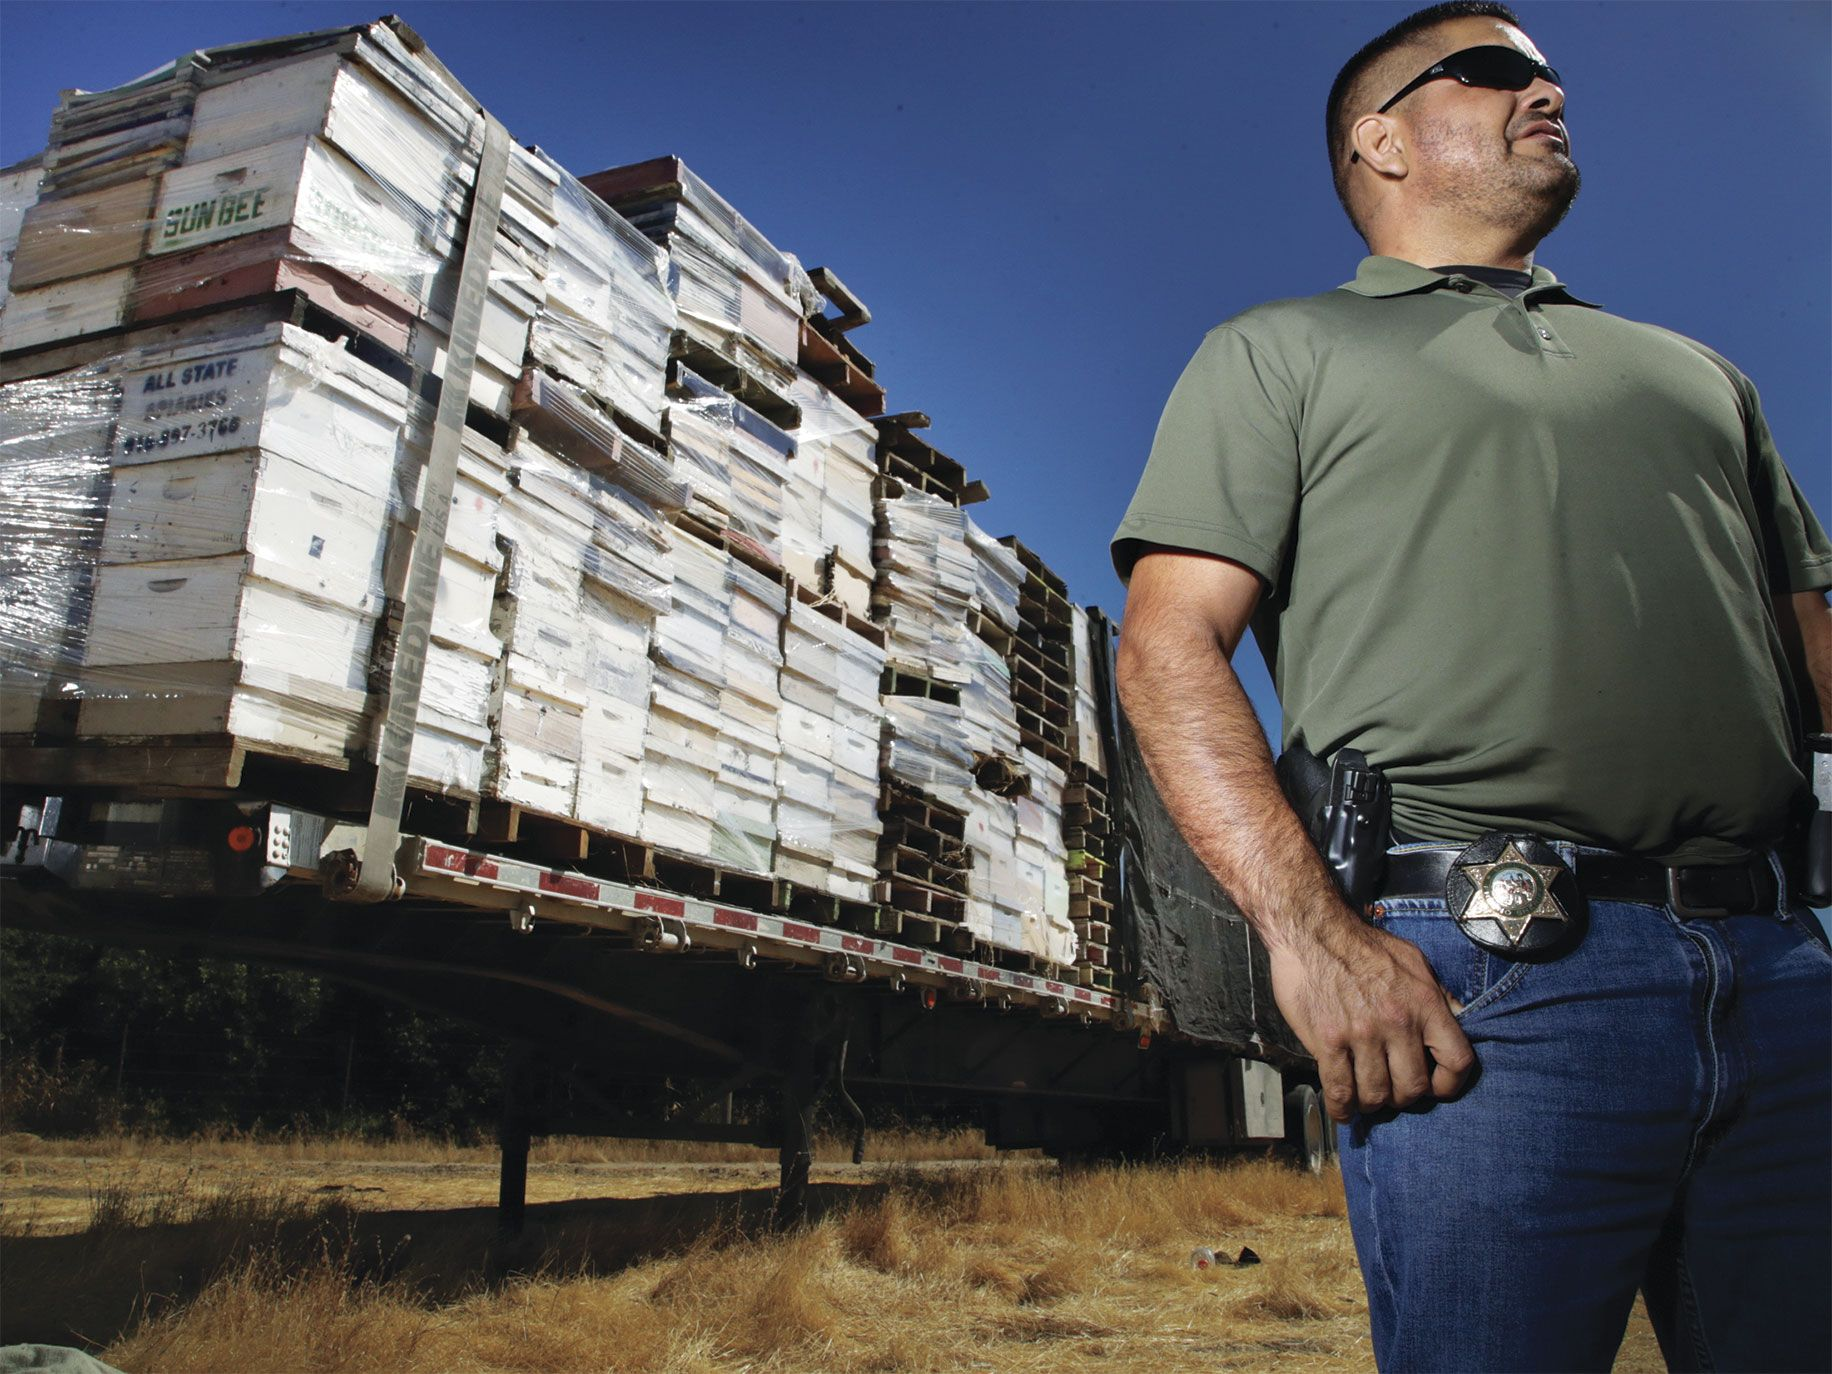 Andres Solis, a detective with the Fresno County Sheriff's office, with a trailer full of stolen and unclaimed beehives.